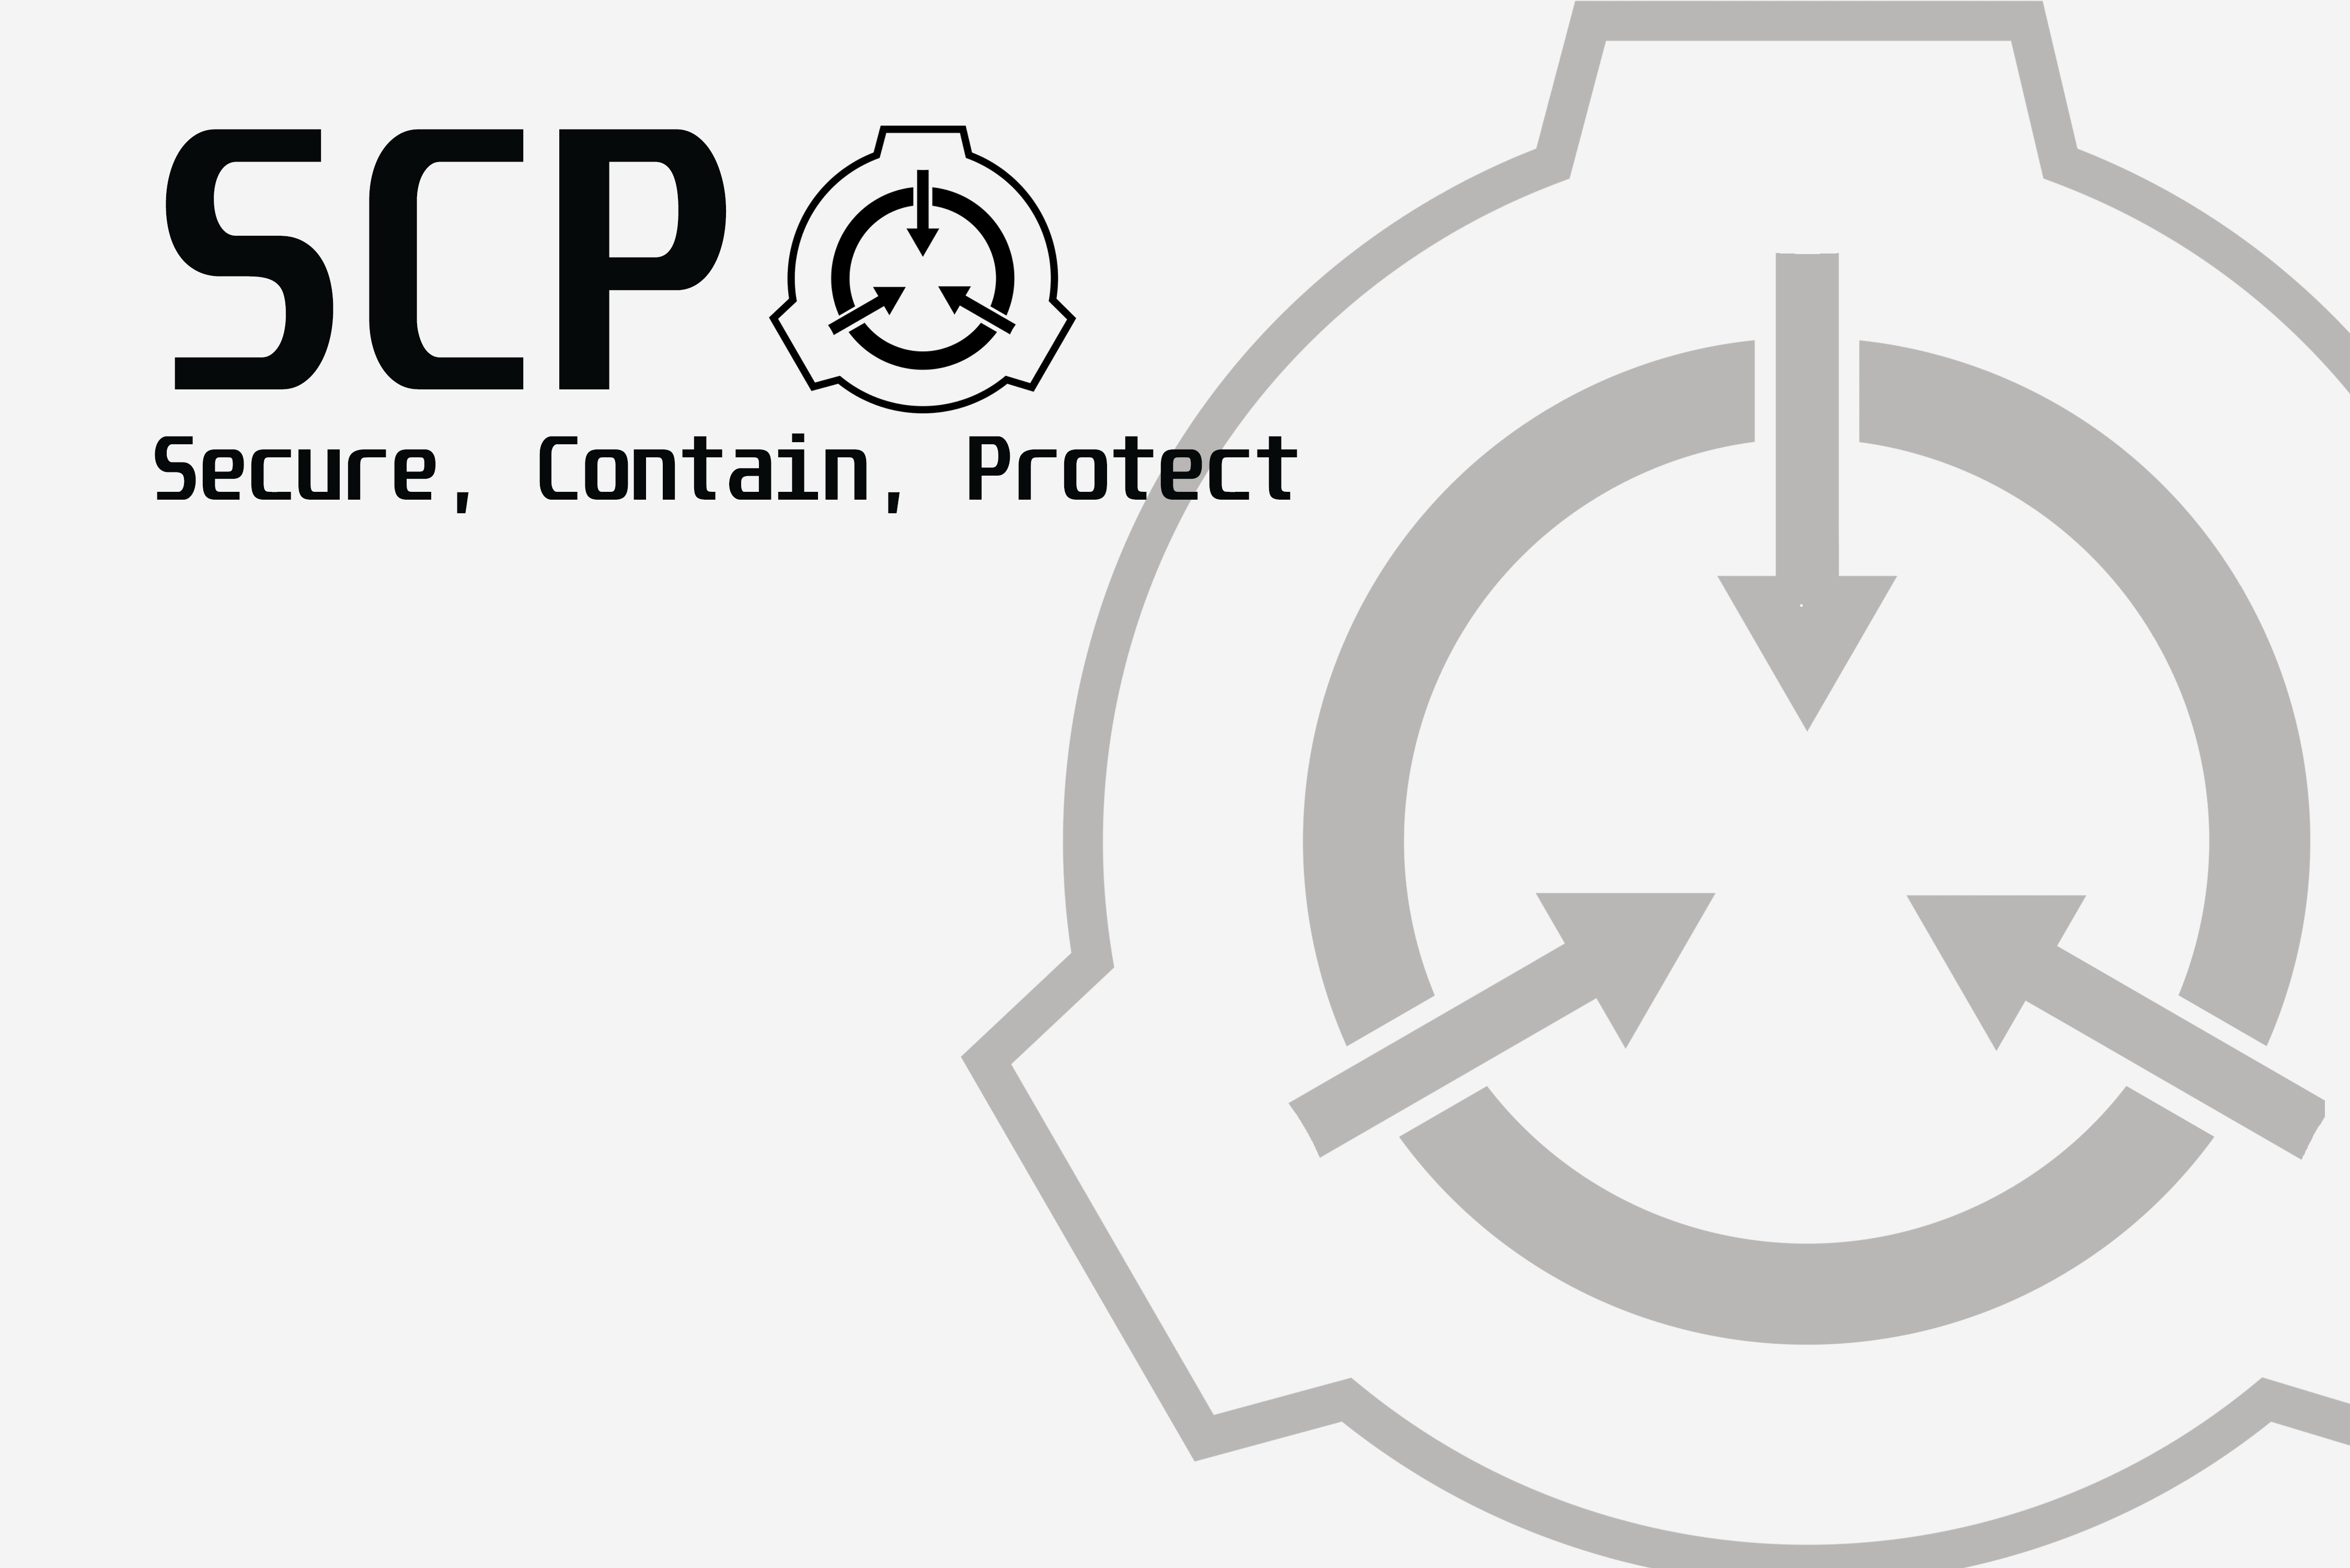 SCP-Ccard-White-01.png